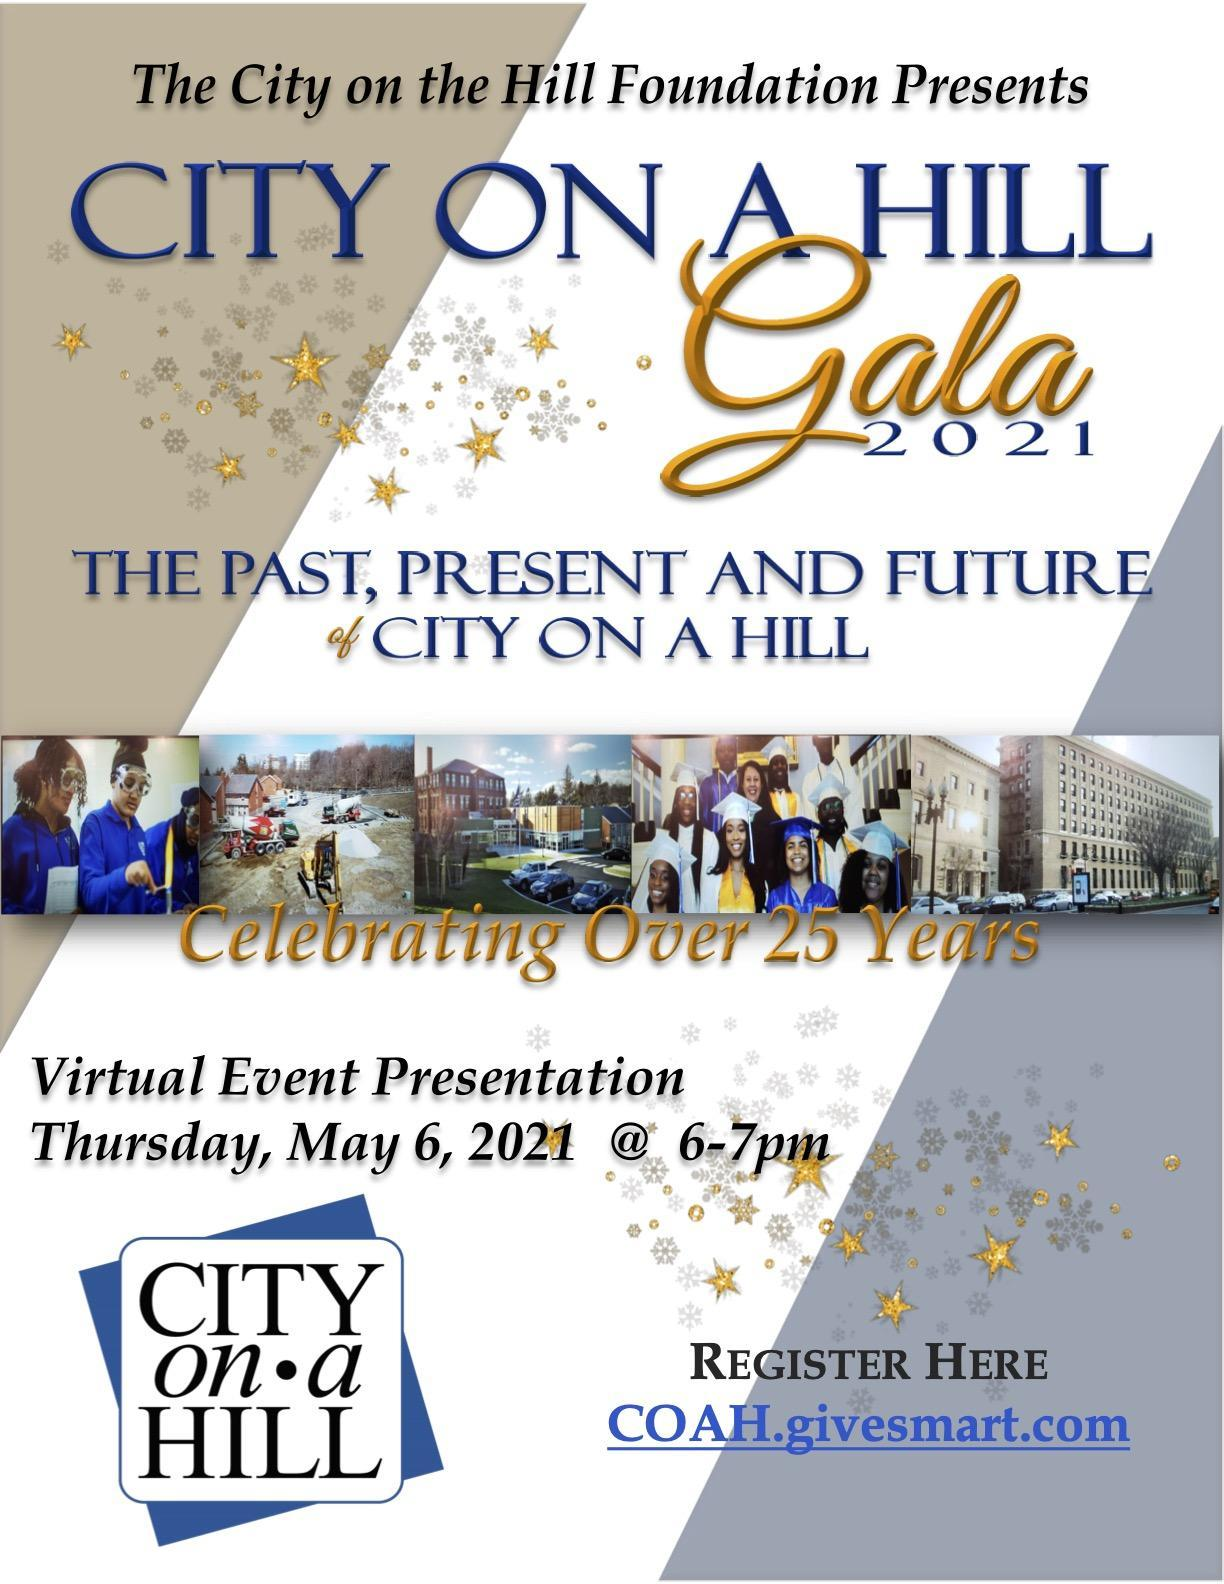 Invitation to the 2021 City on a Hill Gala